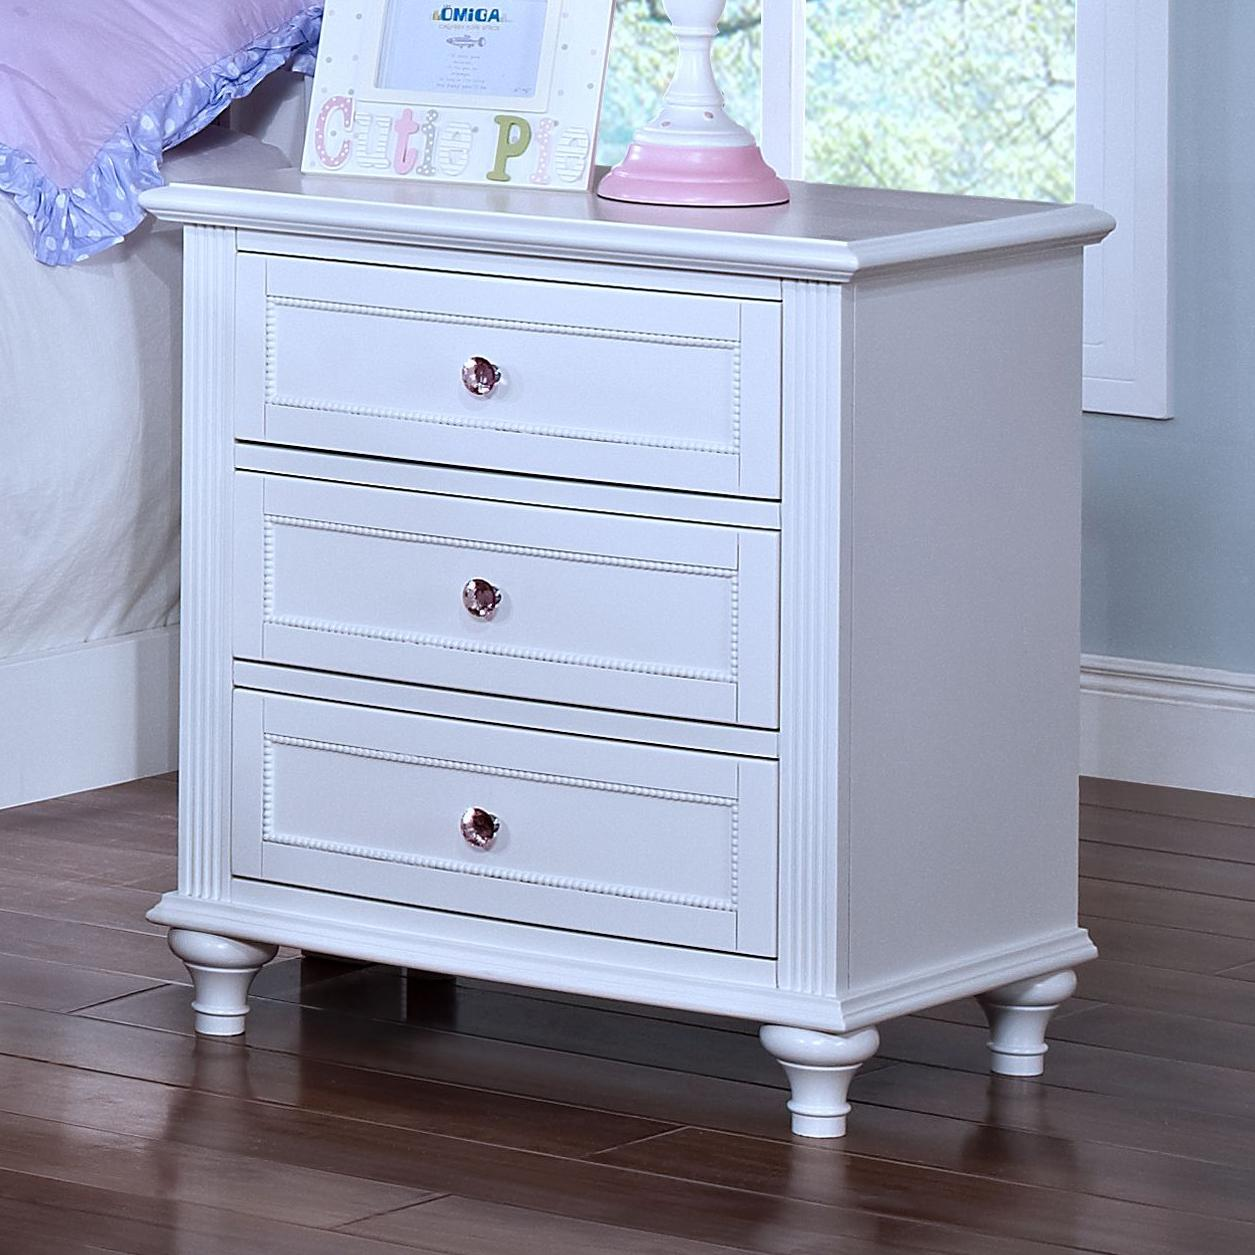 New Classic Megan Nightstand - Item Number: 05-242-042